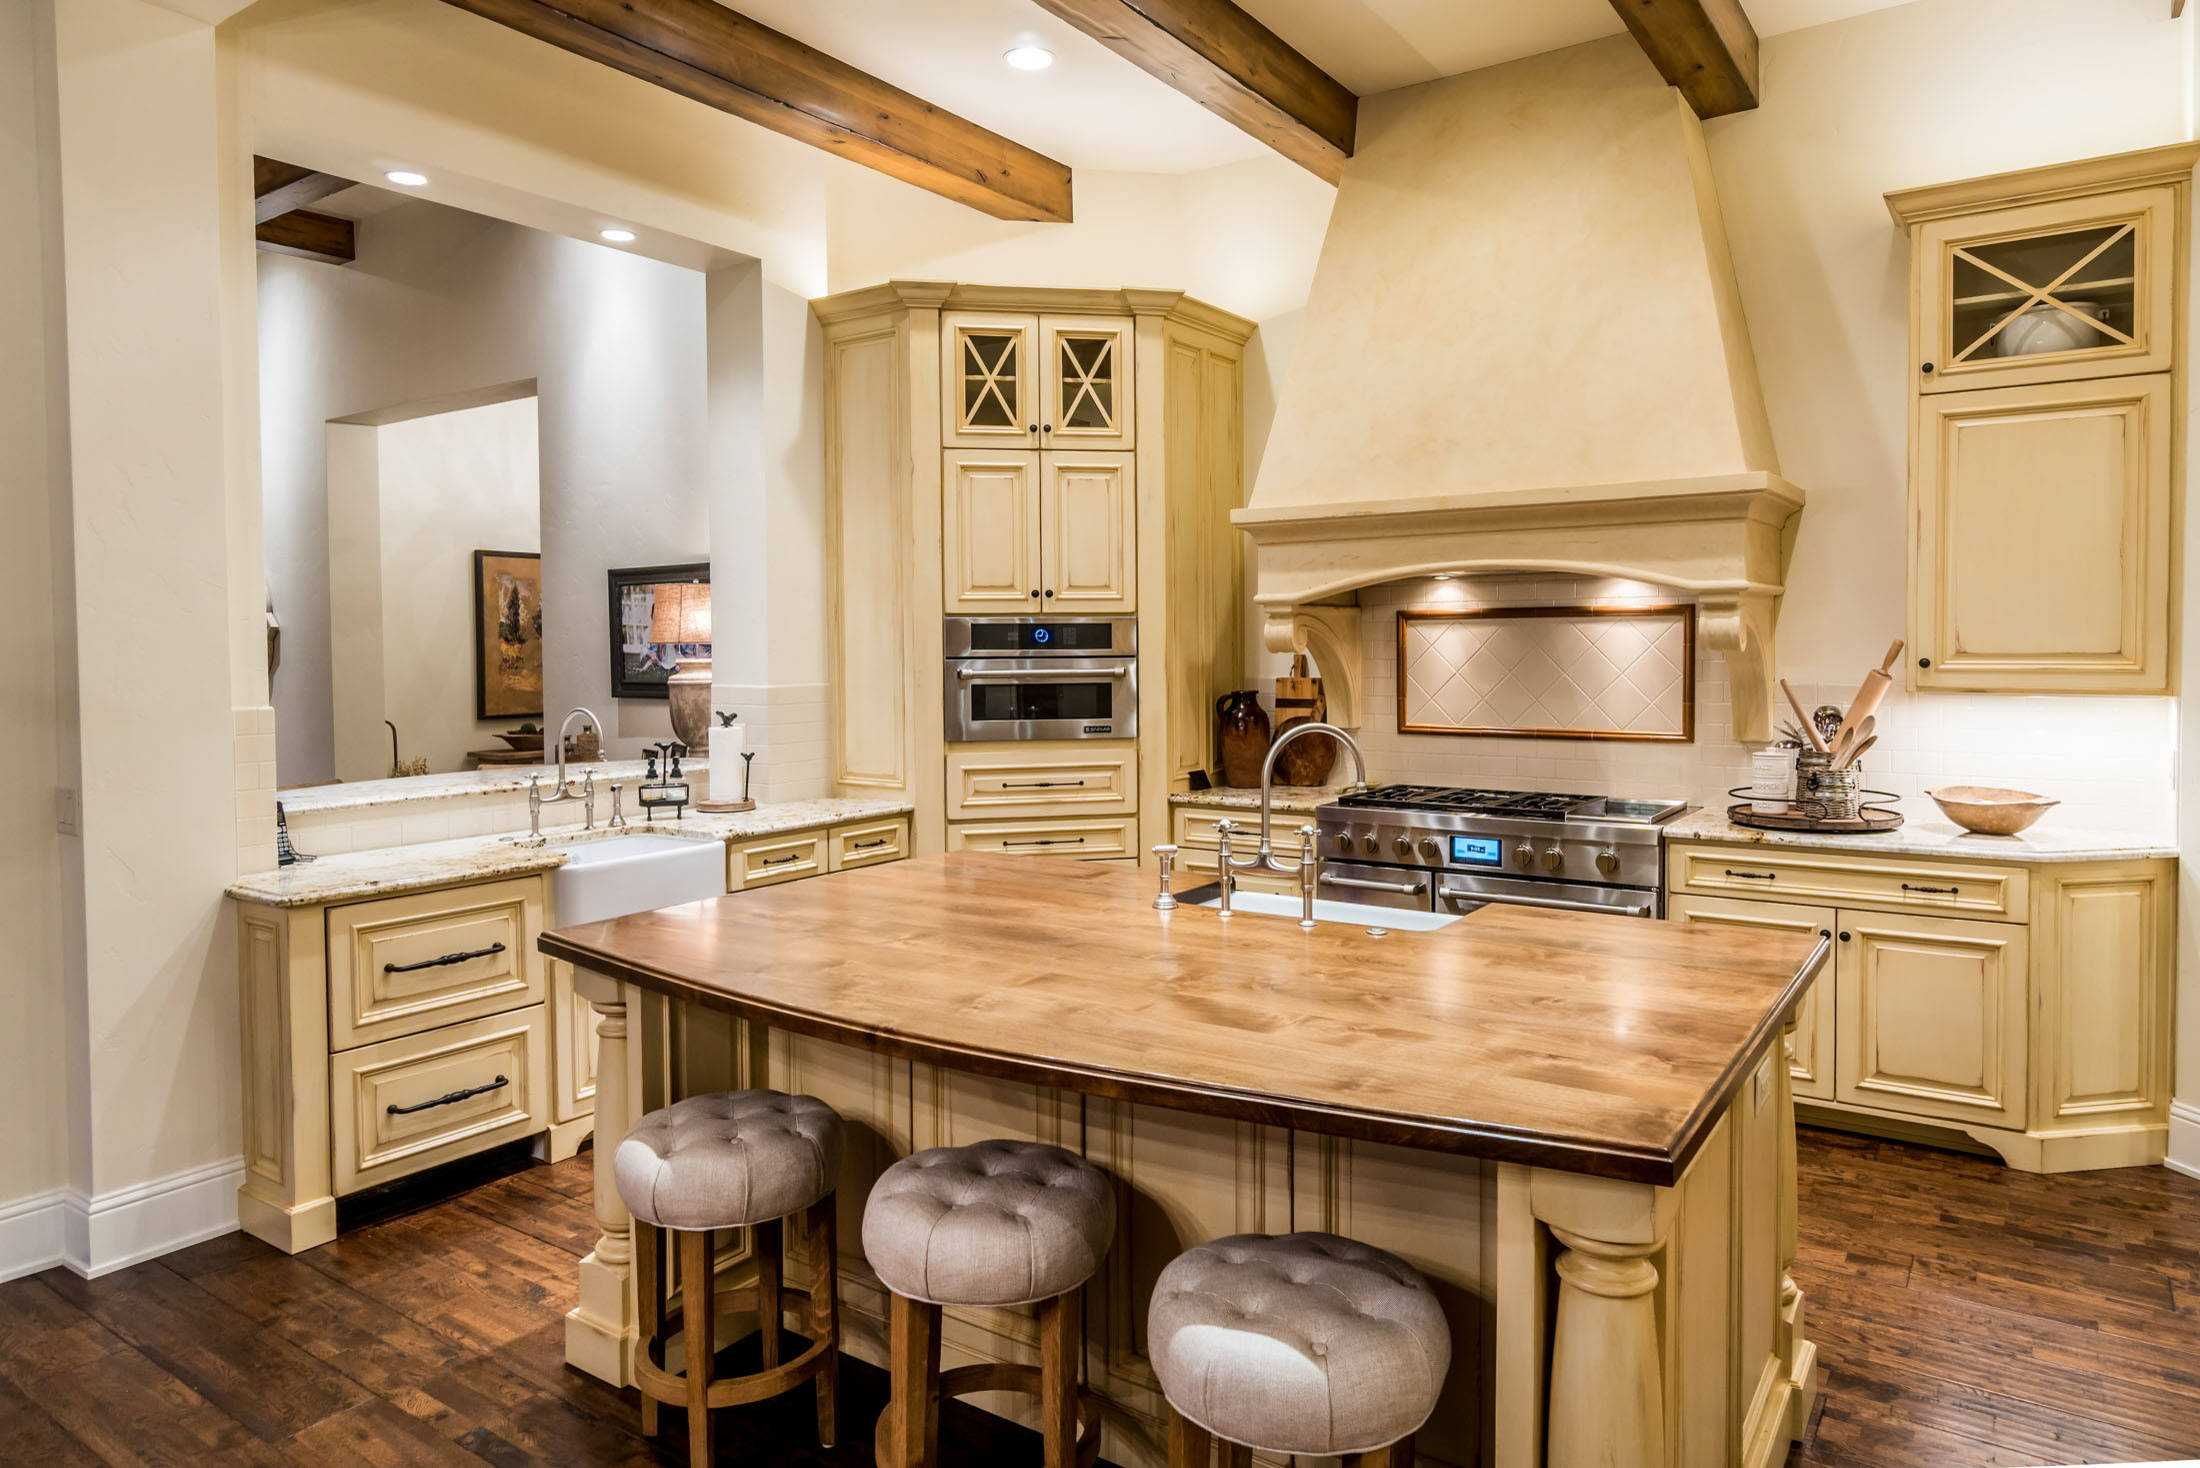 15 Inspirational Rustic Kitchen Designs You Will Adore on Model Kitchen Images  id=71369